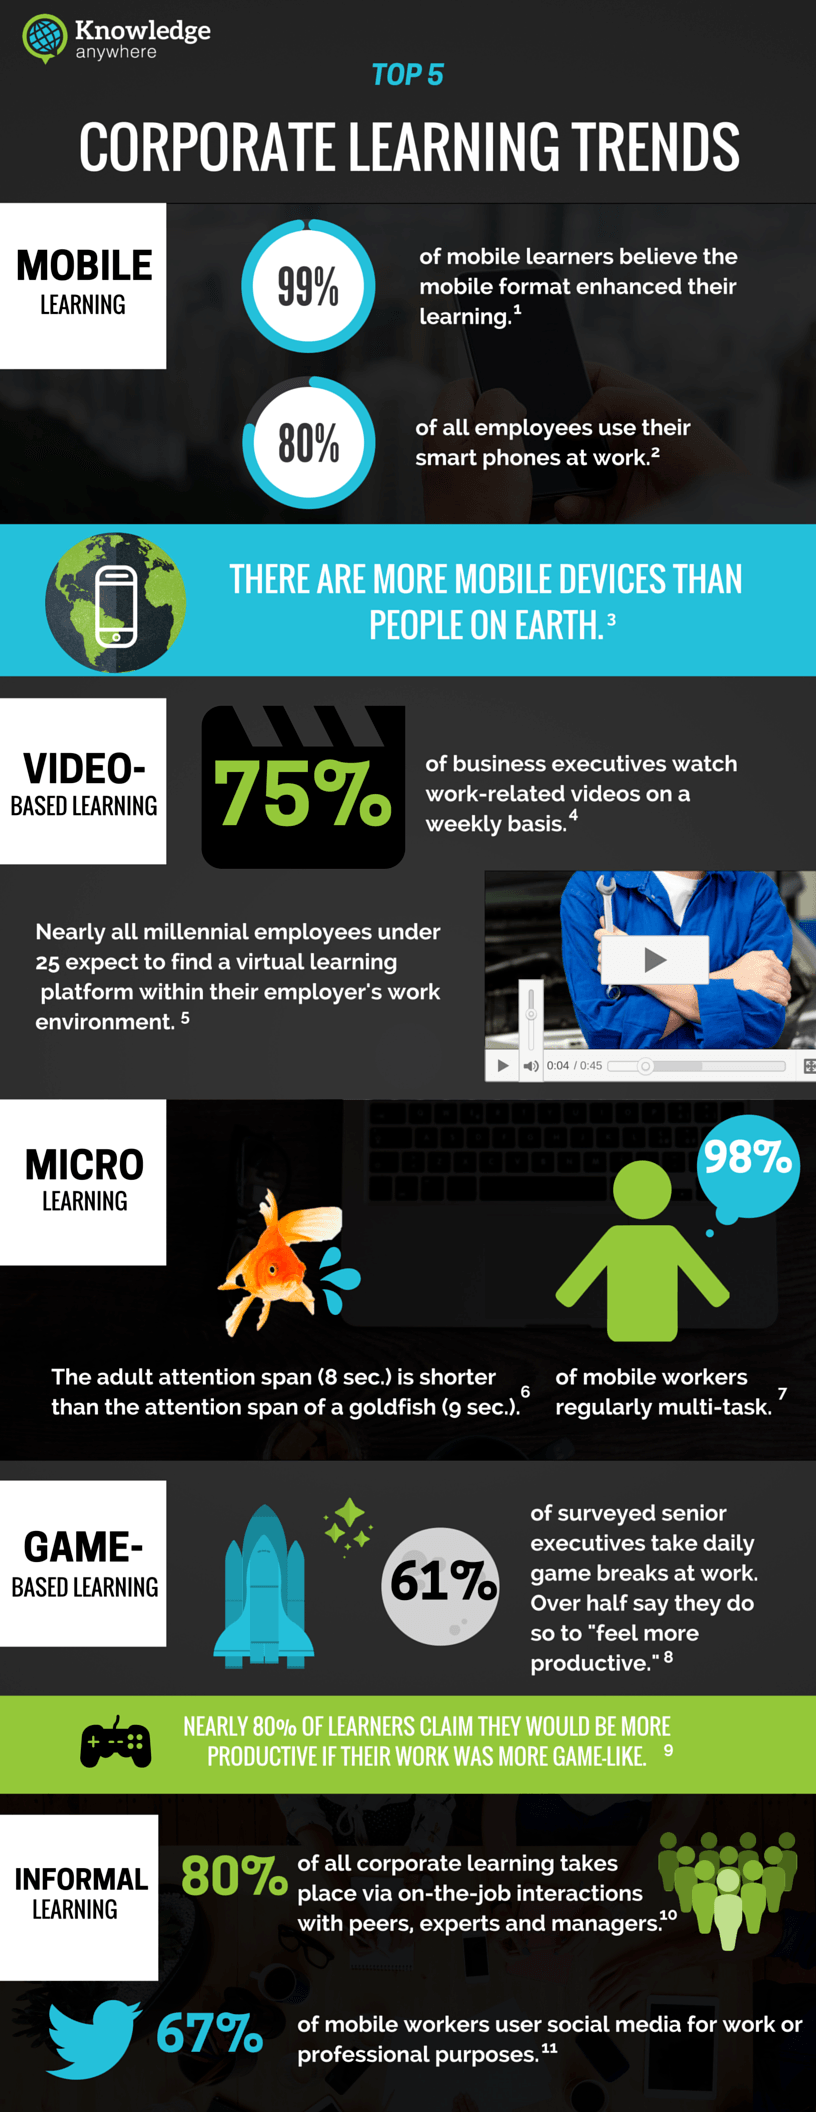 Top 5 Corporate Learning Trends for 2016 Infographic